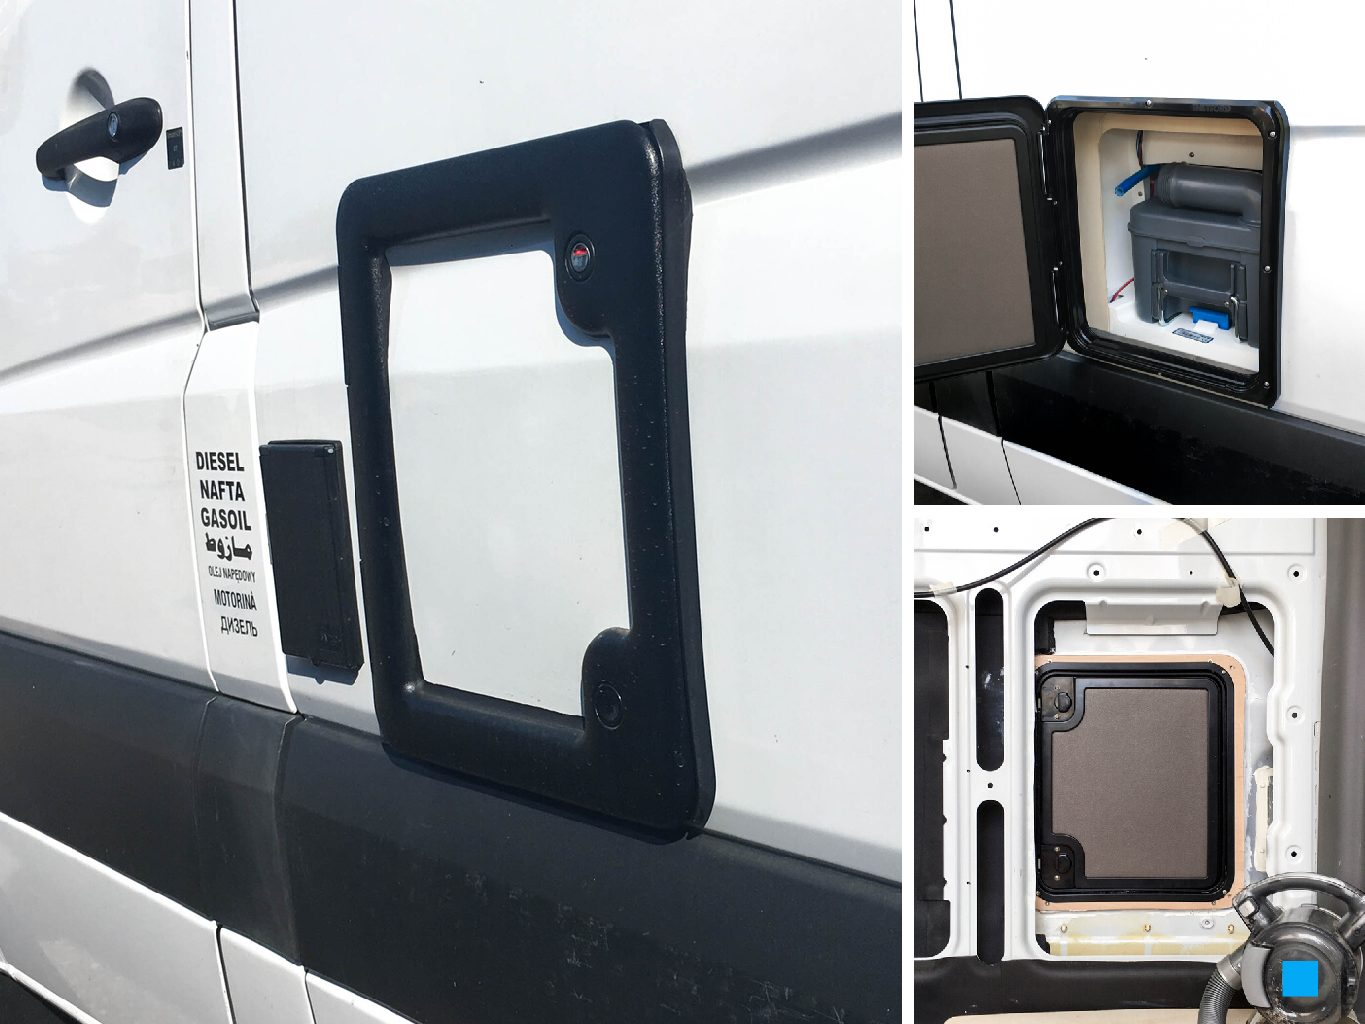 Installation of the Thetford Service Door Model 3